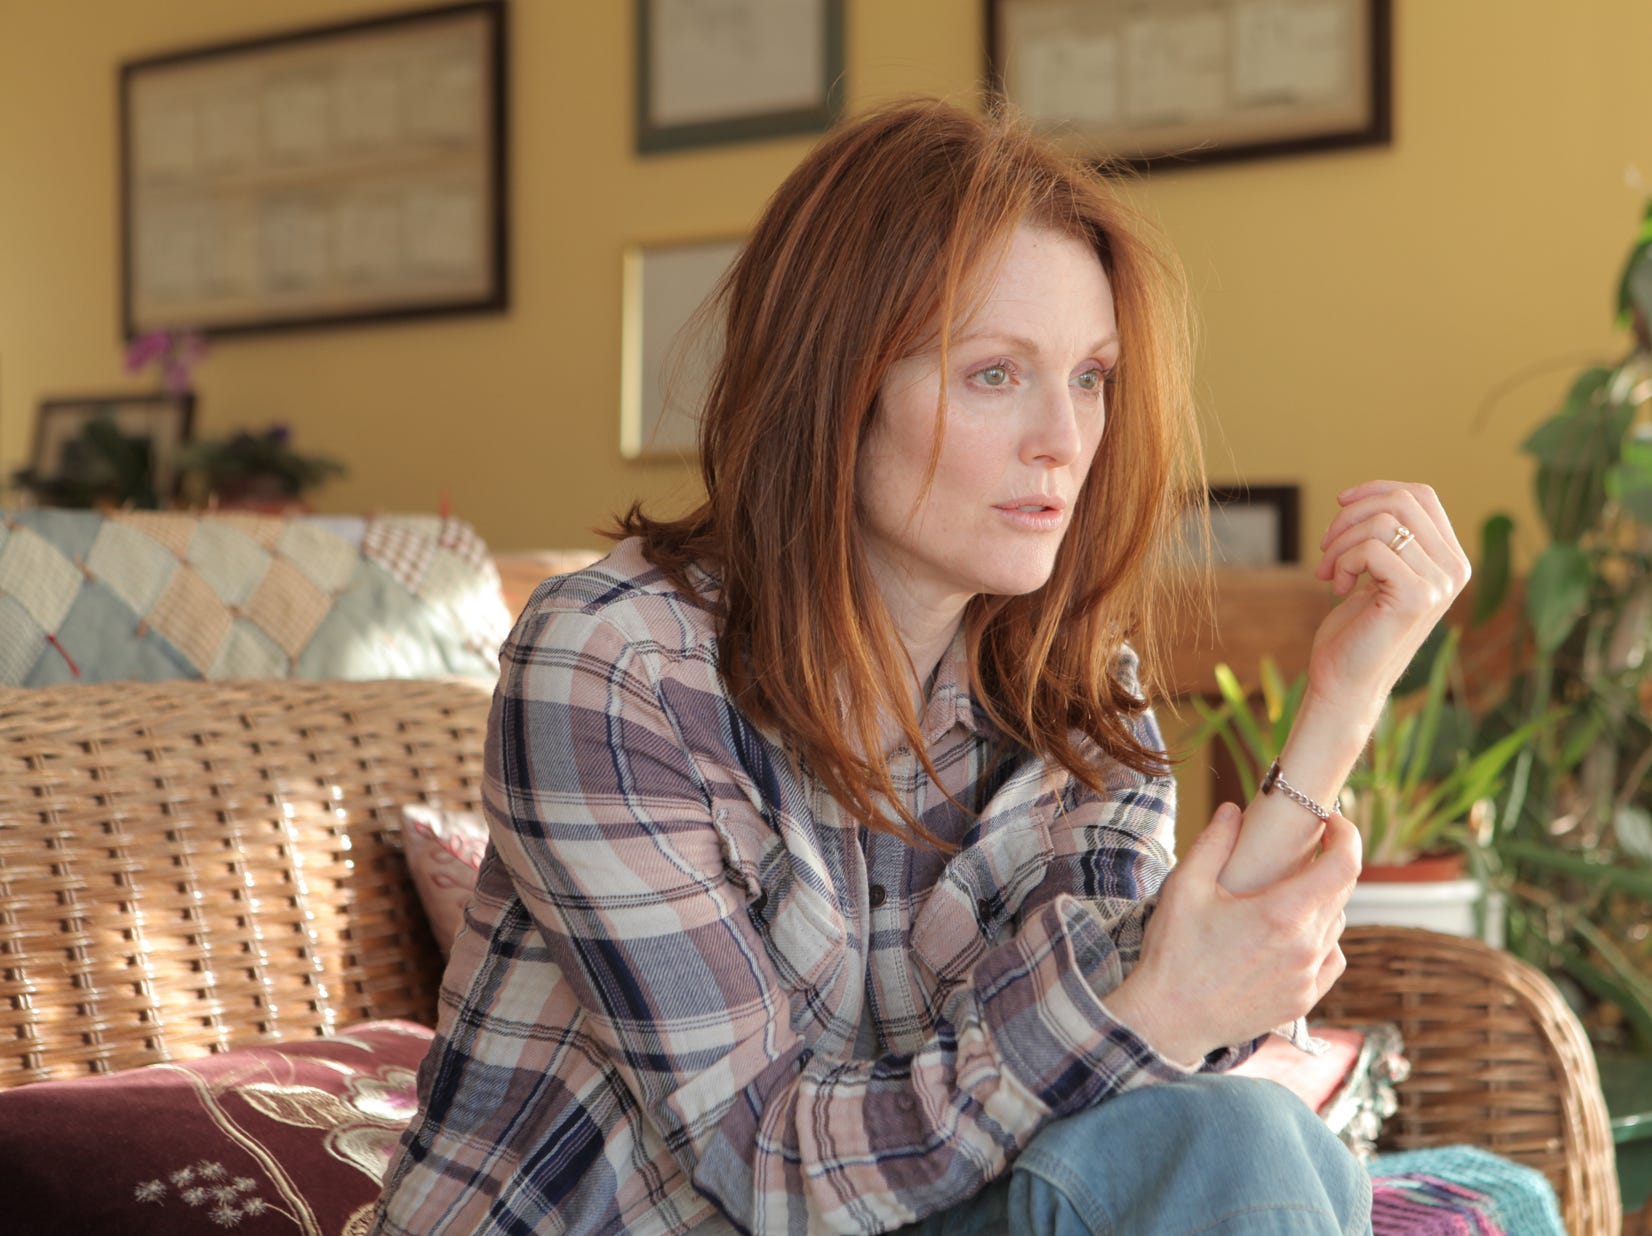 """Julianne Moore received her fifth Oscar nomination for her portrayal of a linguistics professor diagnosed with Alzheimer's in """"Still Alice."""""""